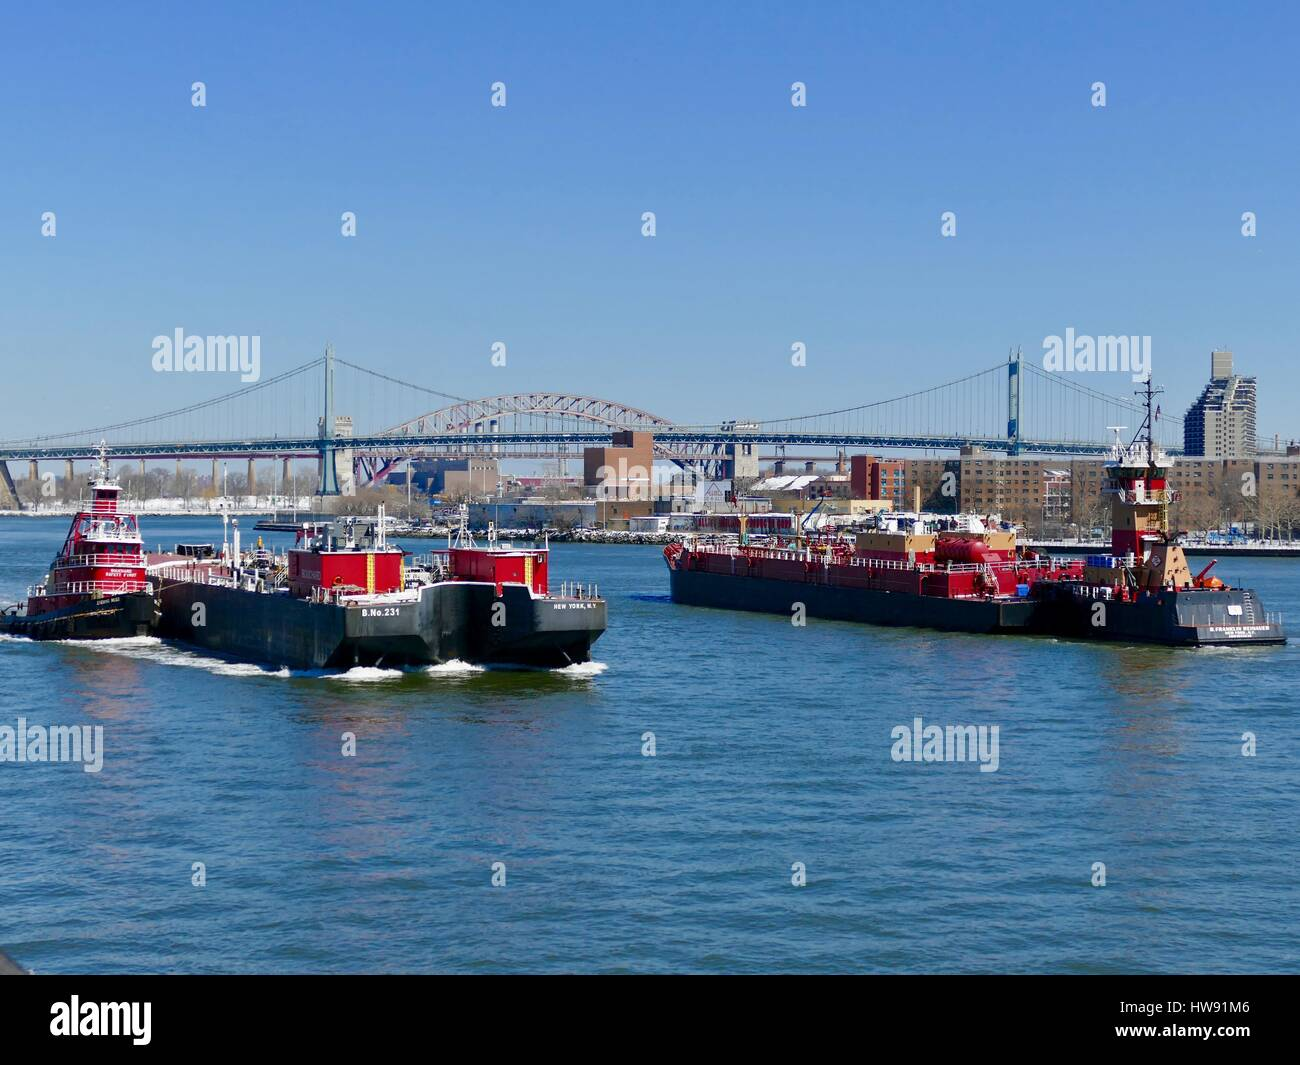 East River boat traffic; red barges and tugboats with RFK bridge in background. New York, New York, USA - Stock Image